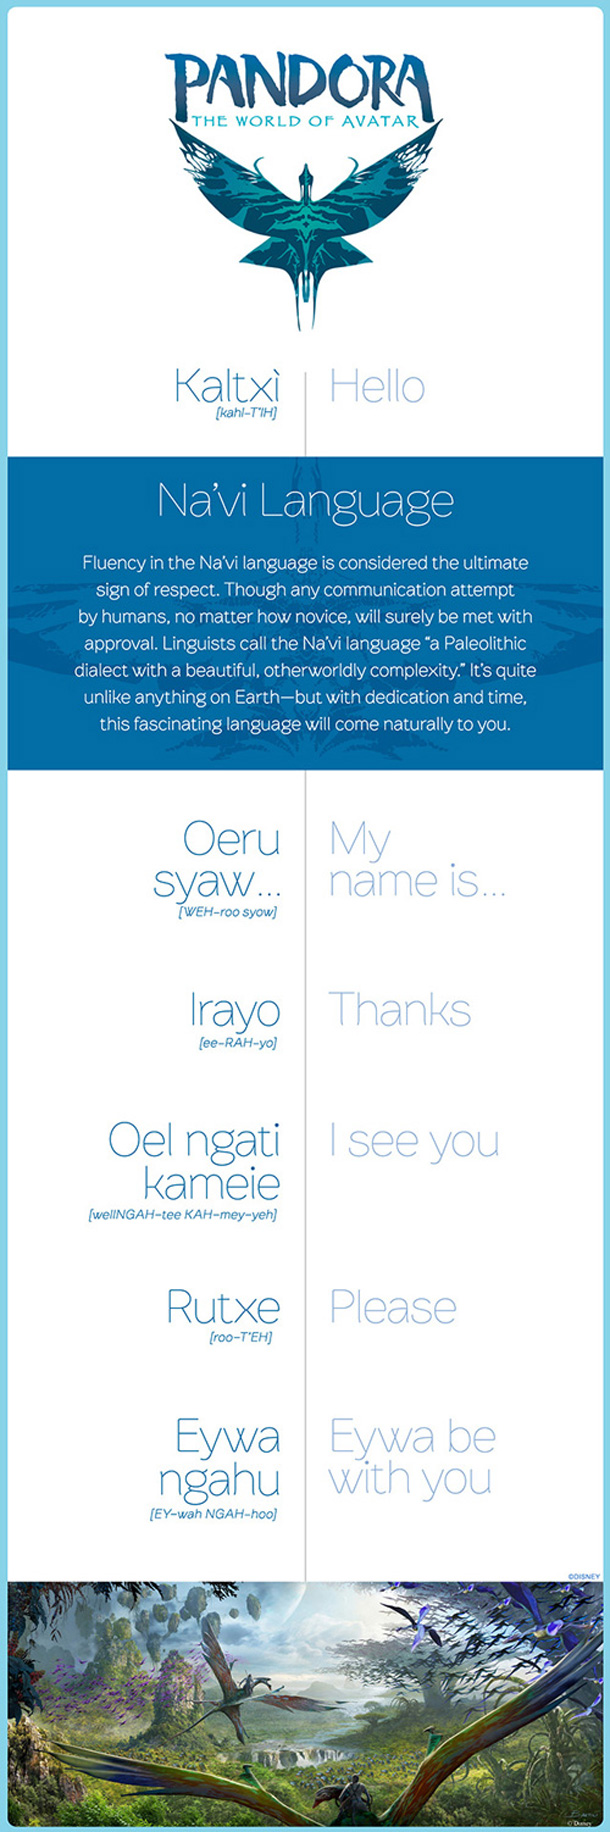 Infographic: Learn to Speak Na'vi For Your Trip To Pandora - The World of Avatar